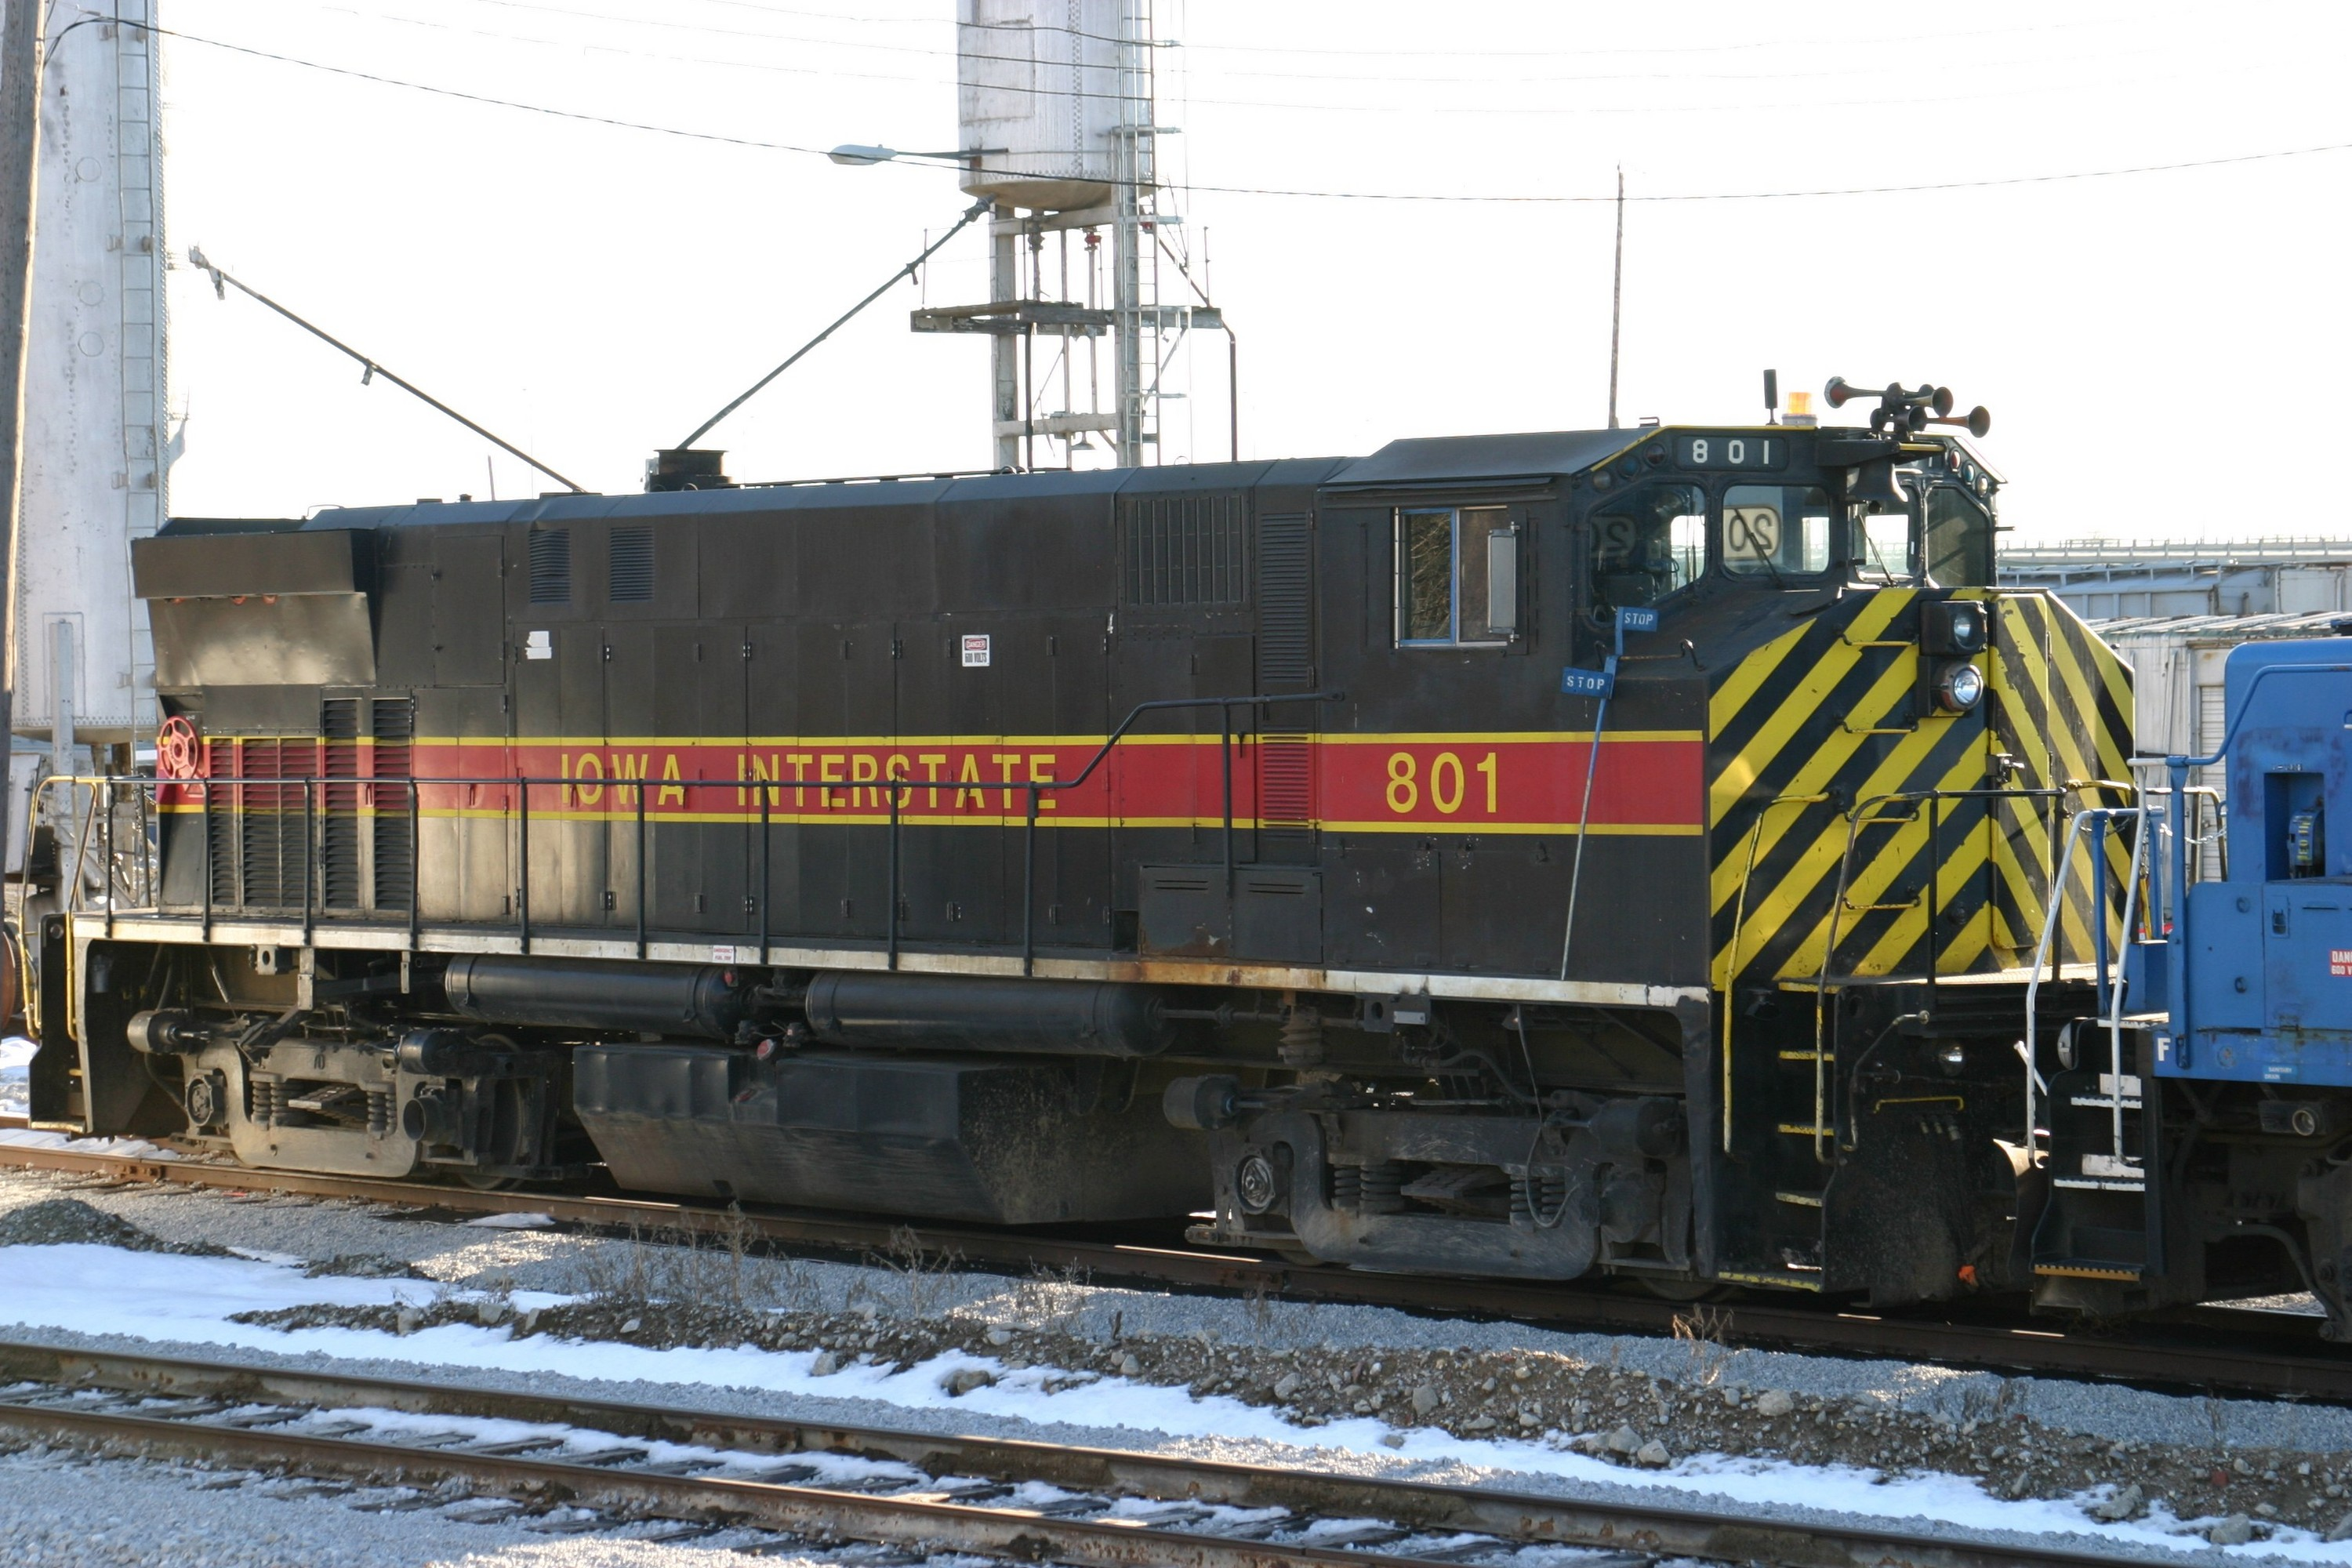 IAIS 801 at Council Bluffs, IA on 20-Dec-2003